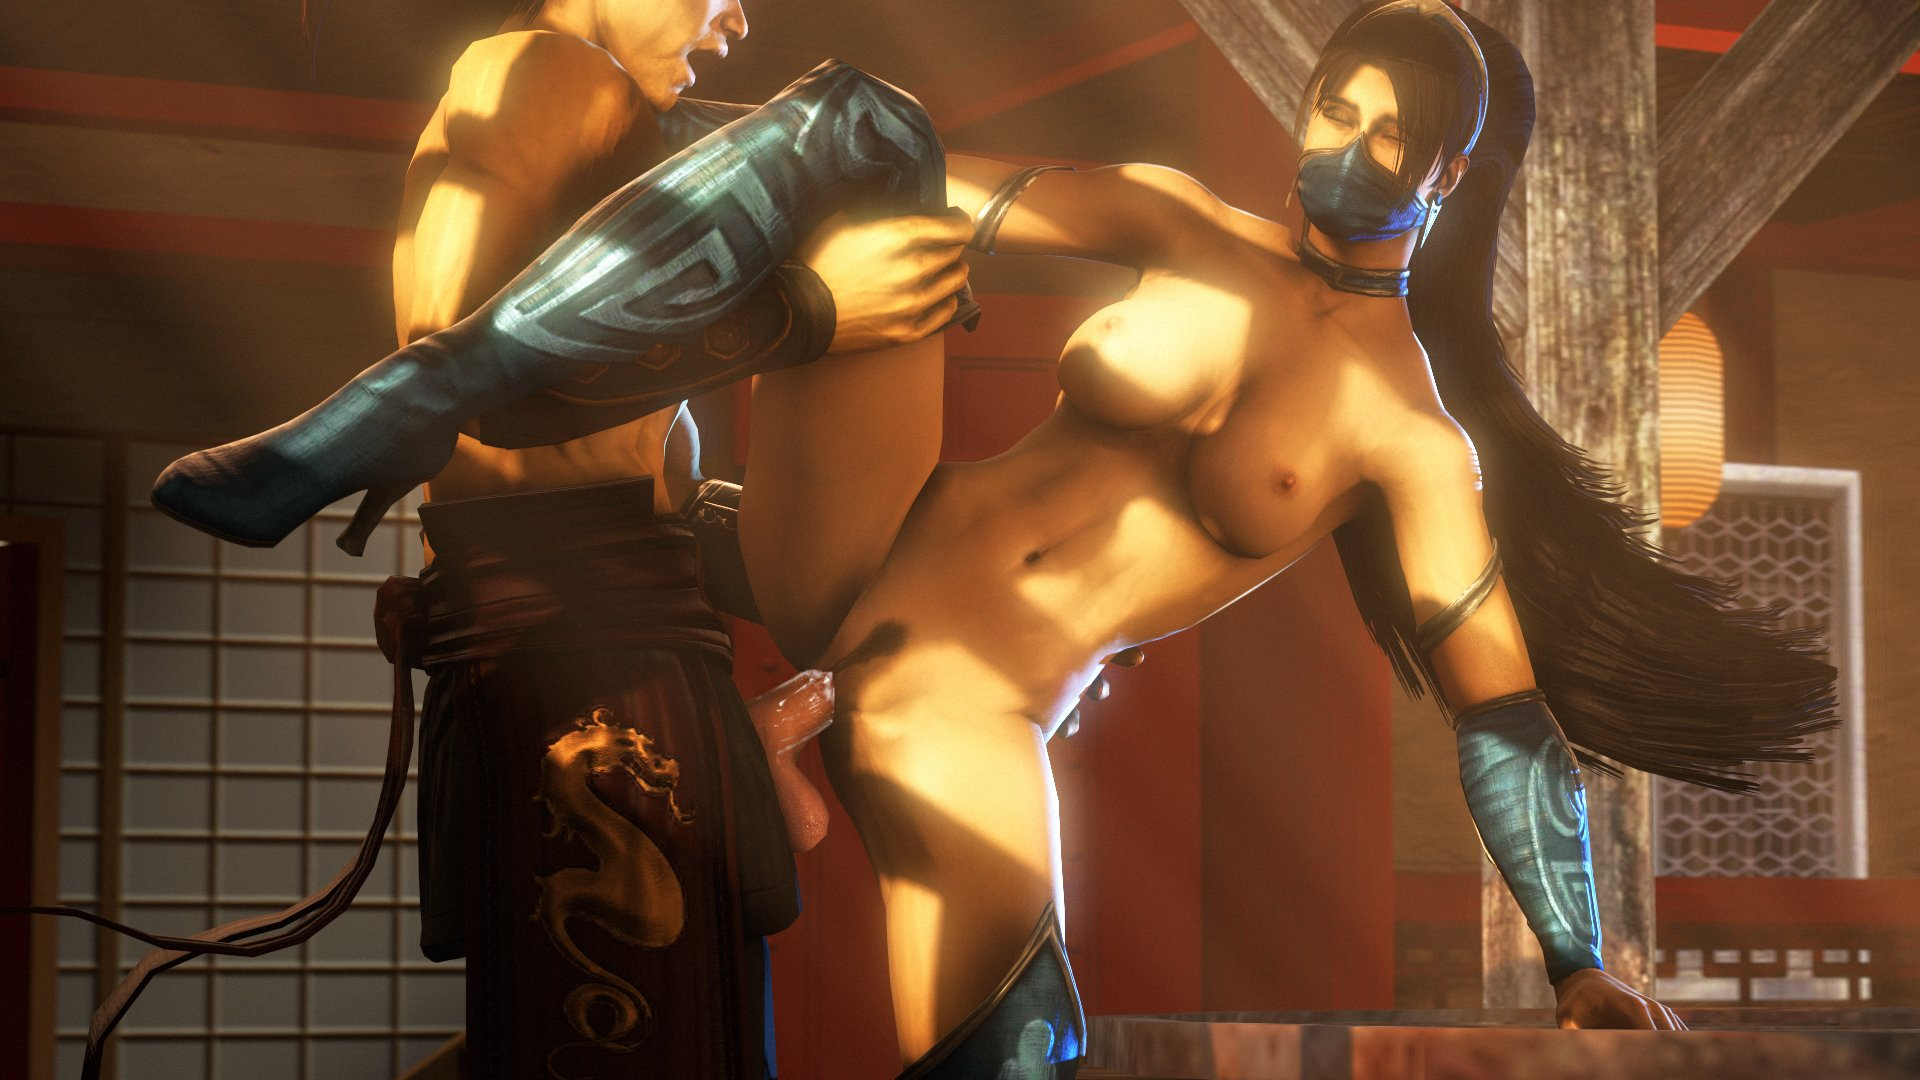 girls of mortal kombat fucked